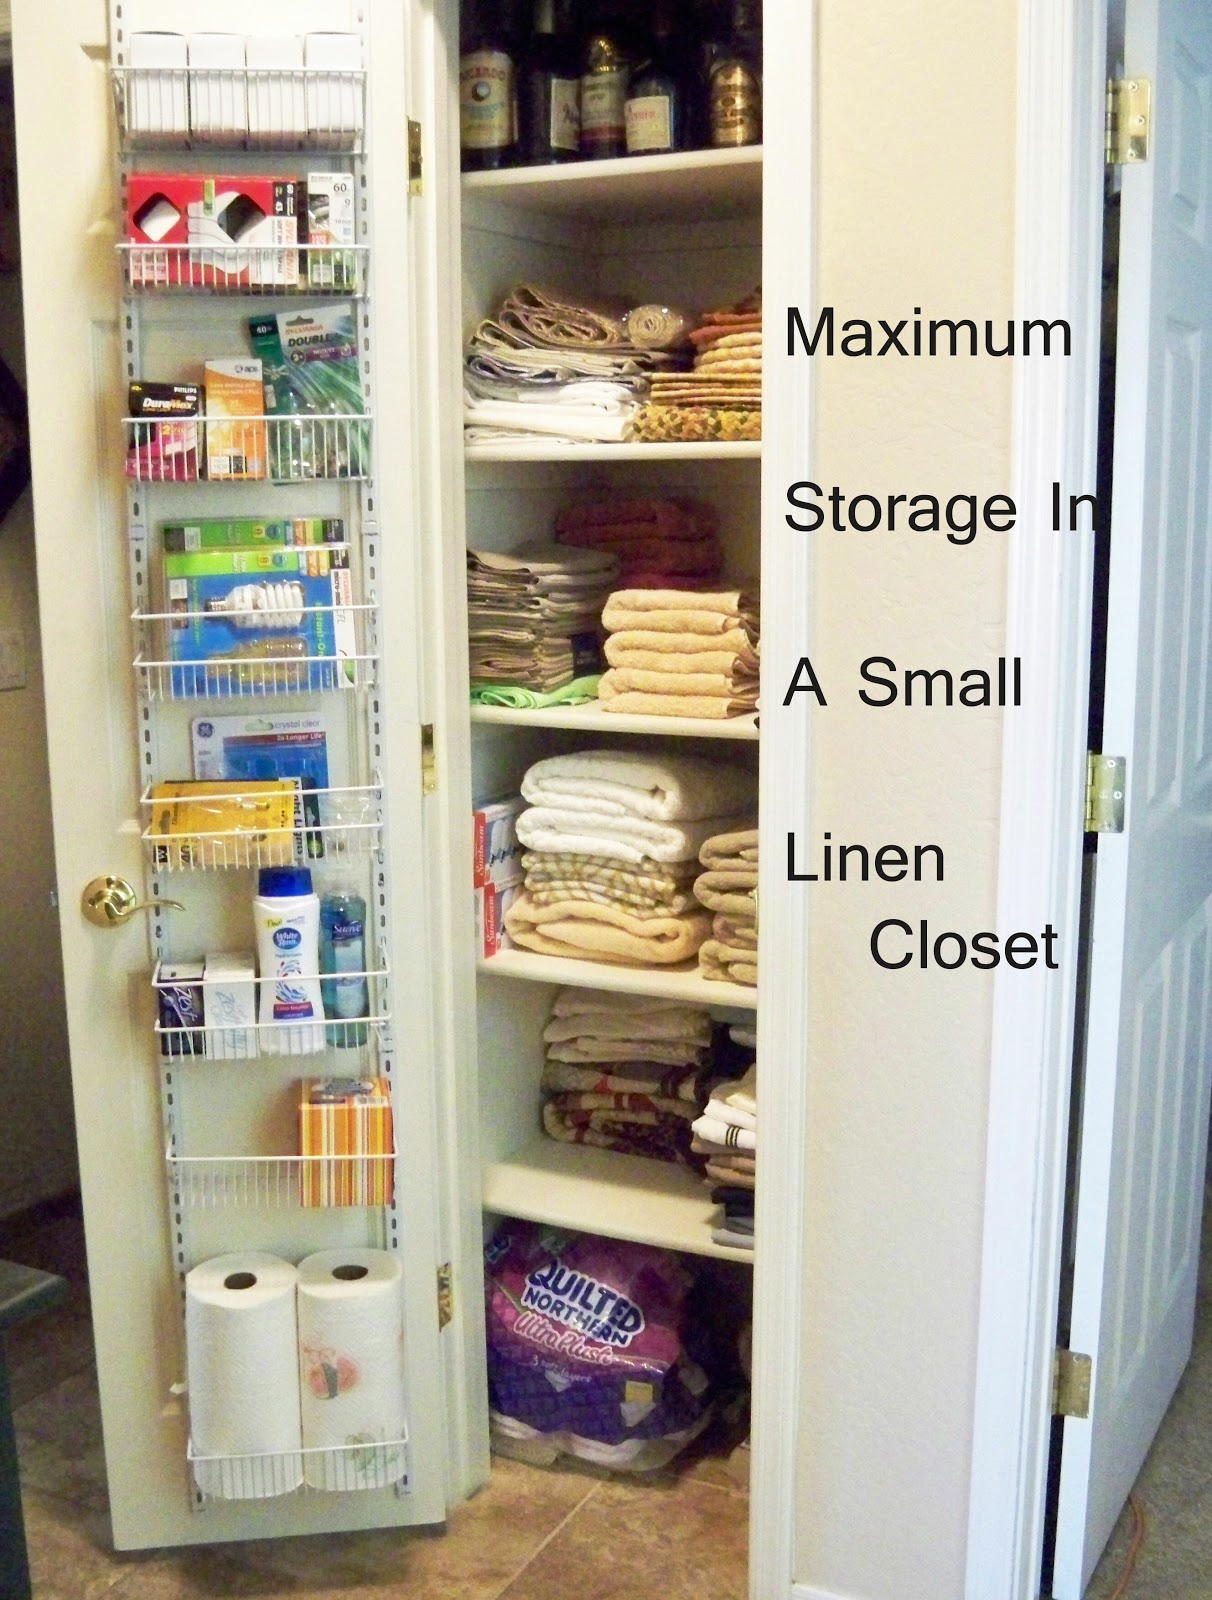 A stroll thru life maximum storage in a small linen closet for Storage solutions for small closets